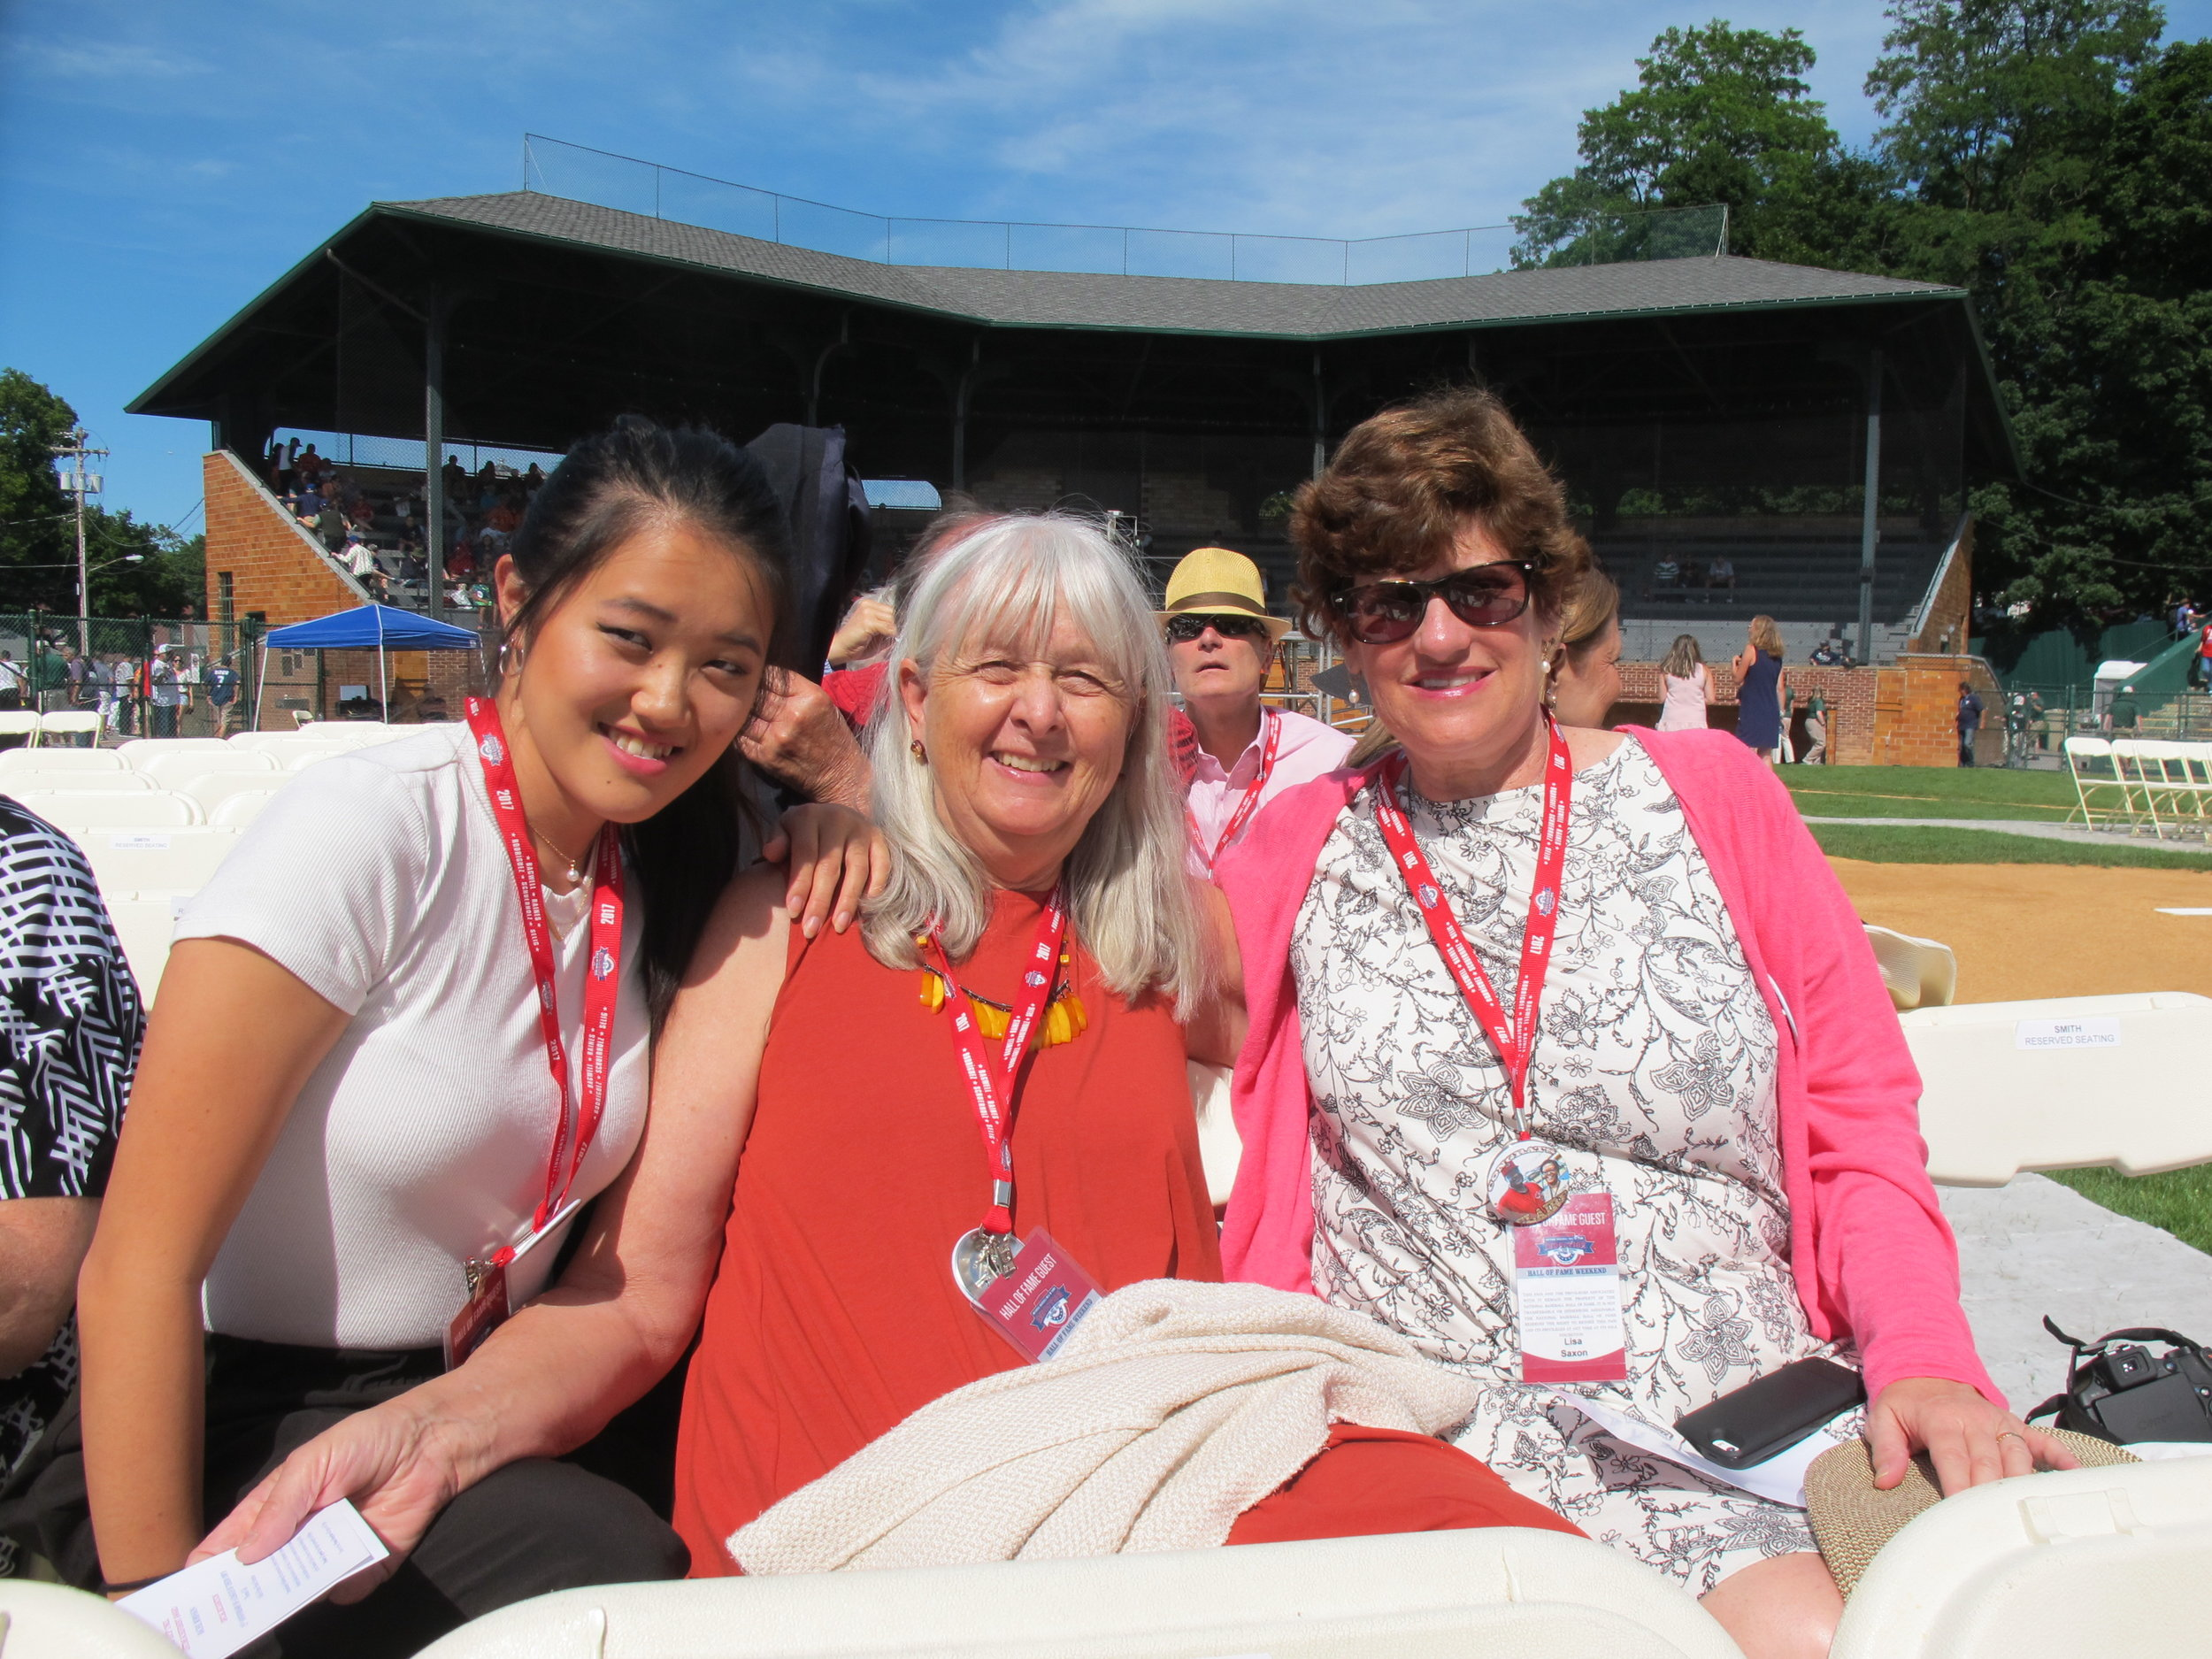 Lisa Nehus Saxon, right, Melissa Ludtke, center, Maya Ludtke (Melissa's daughter), left at the Baseball Hall of Fame's baseball diamond for the hall's induction of Claire Smith. July 2018